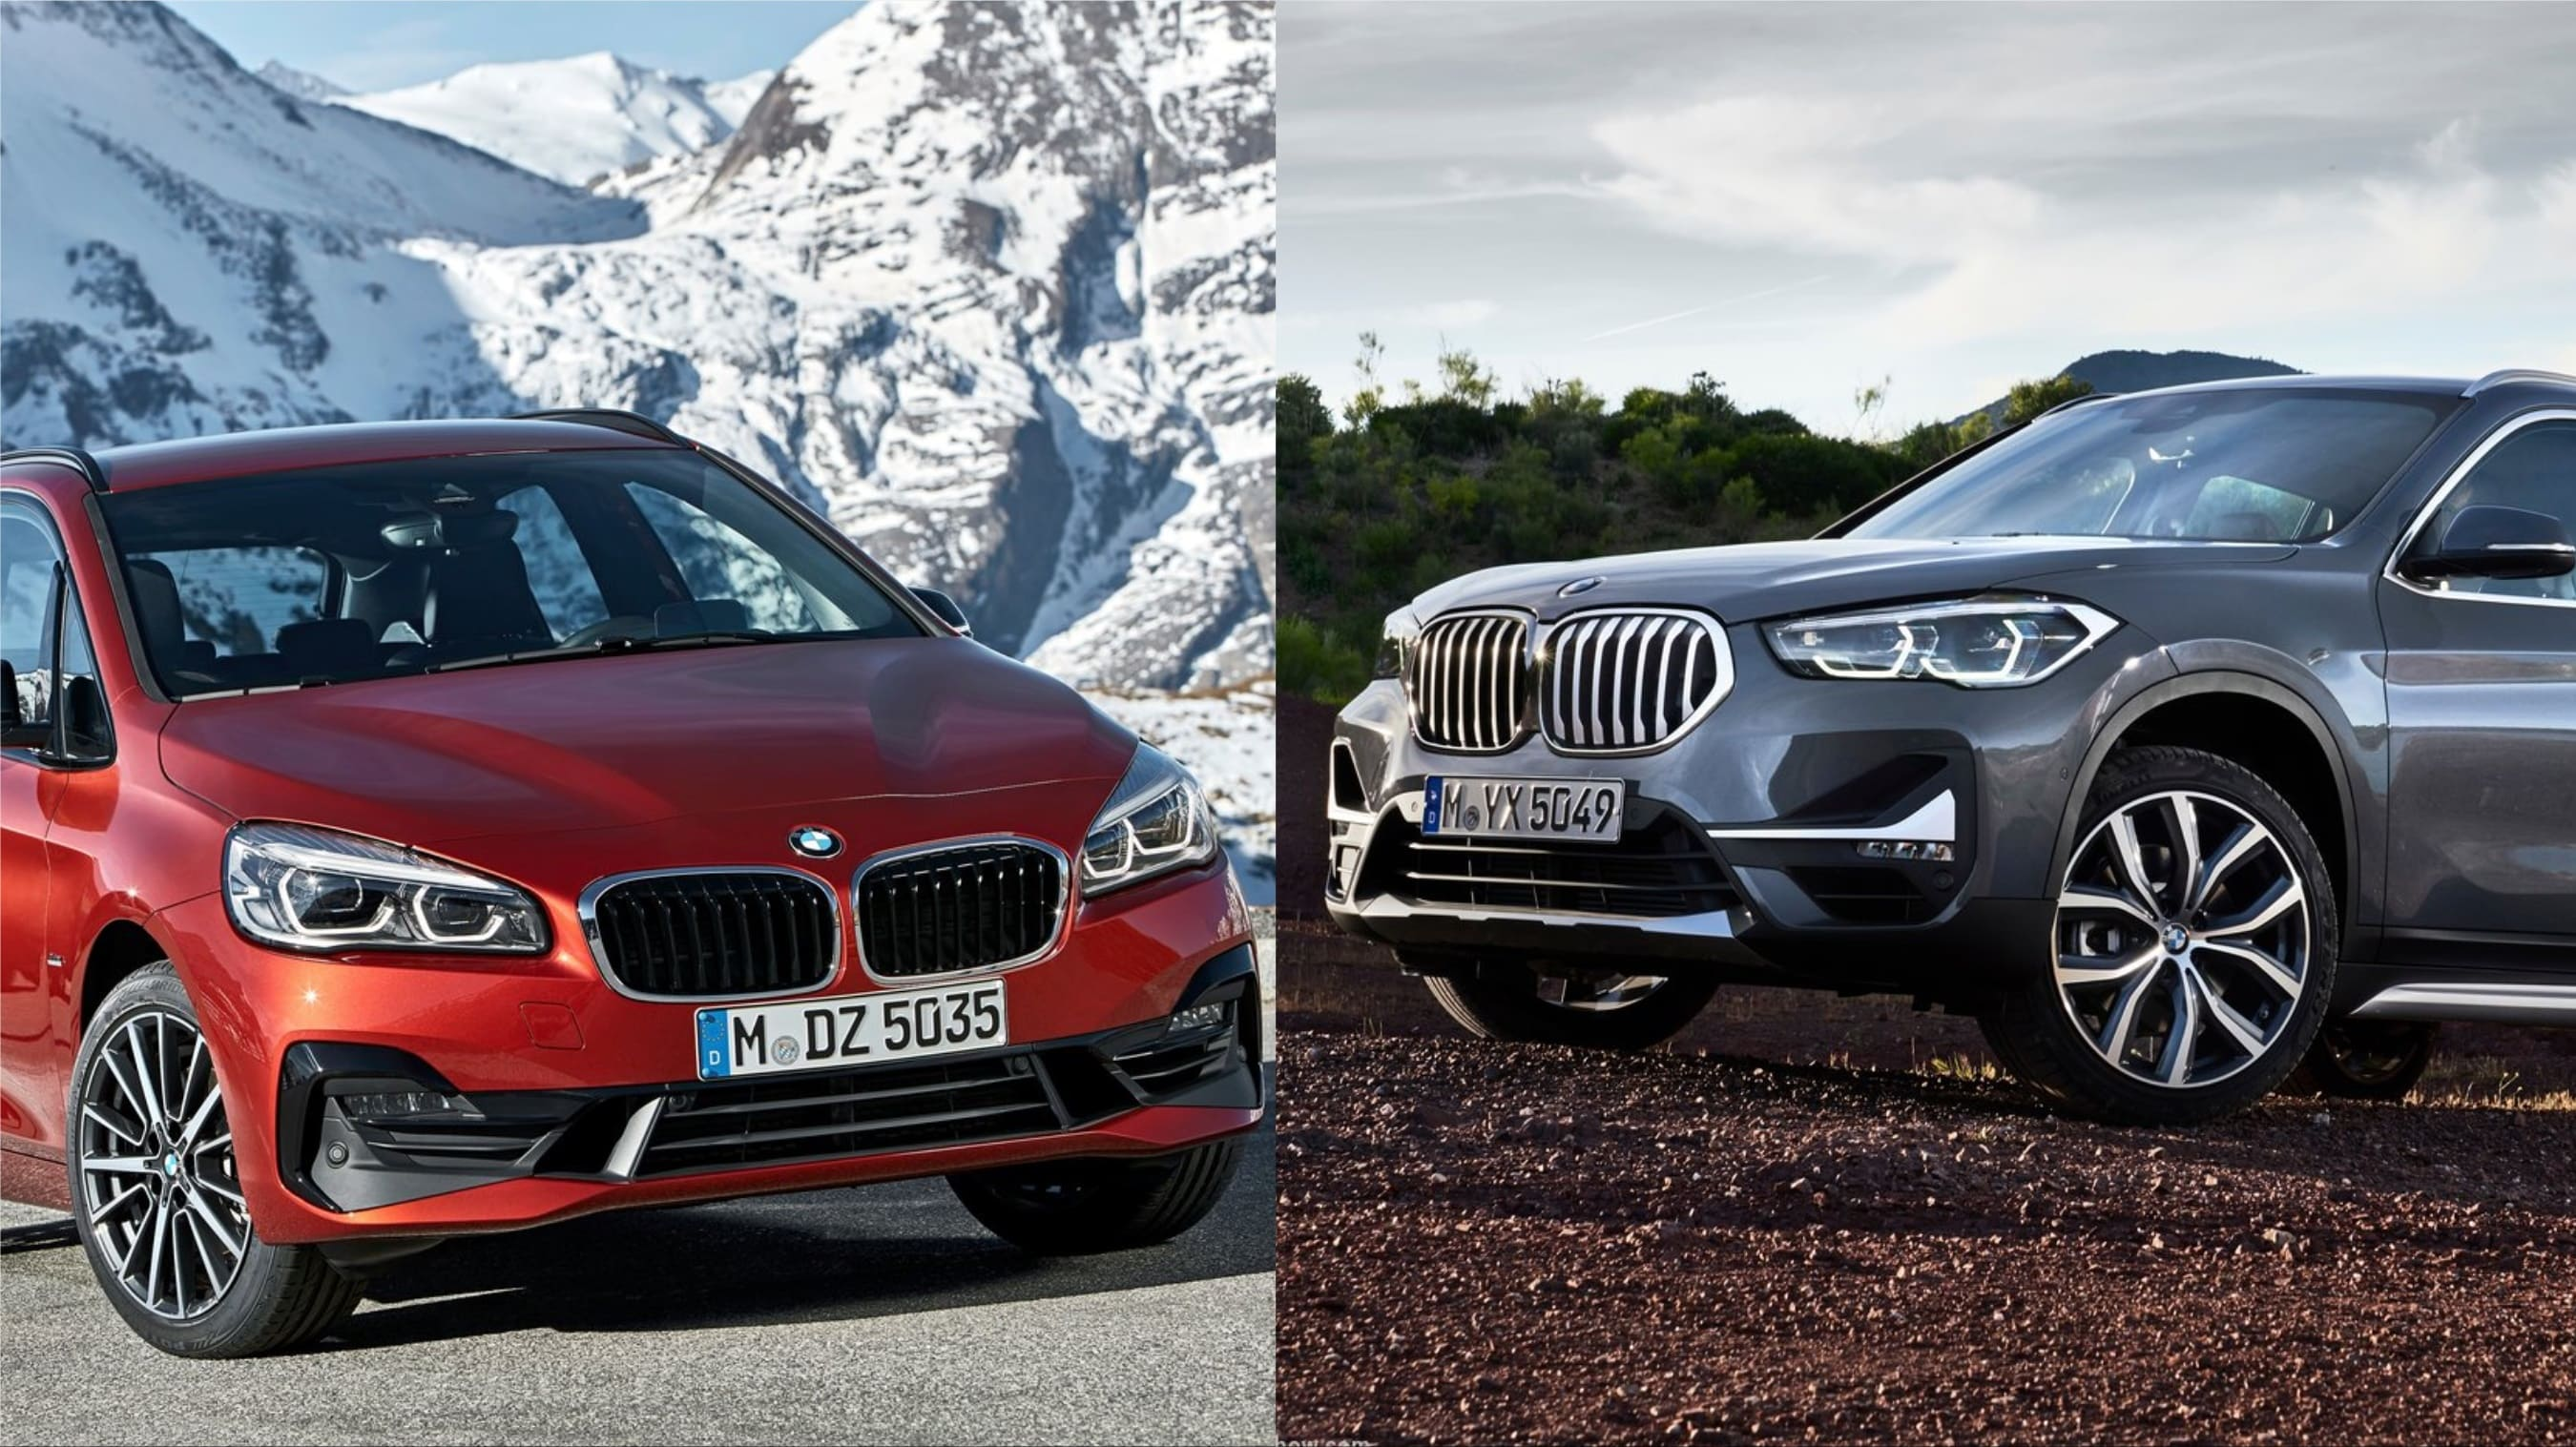 BMW X1 VS BMW Serie 2 Active Tourer